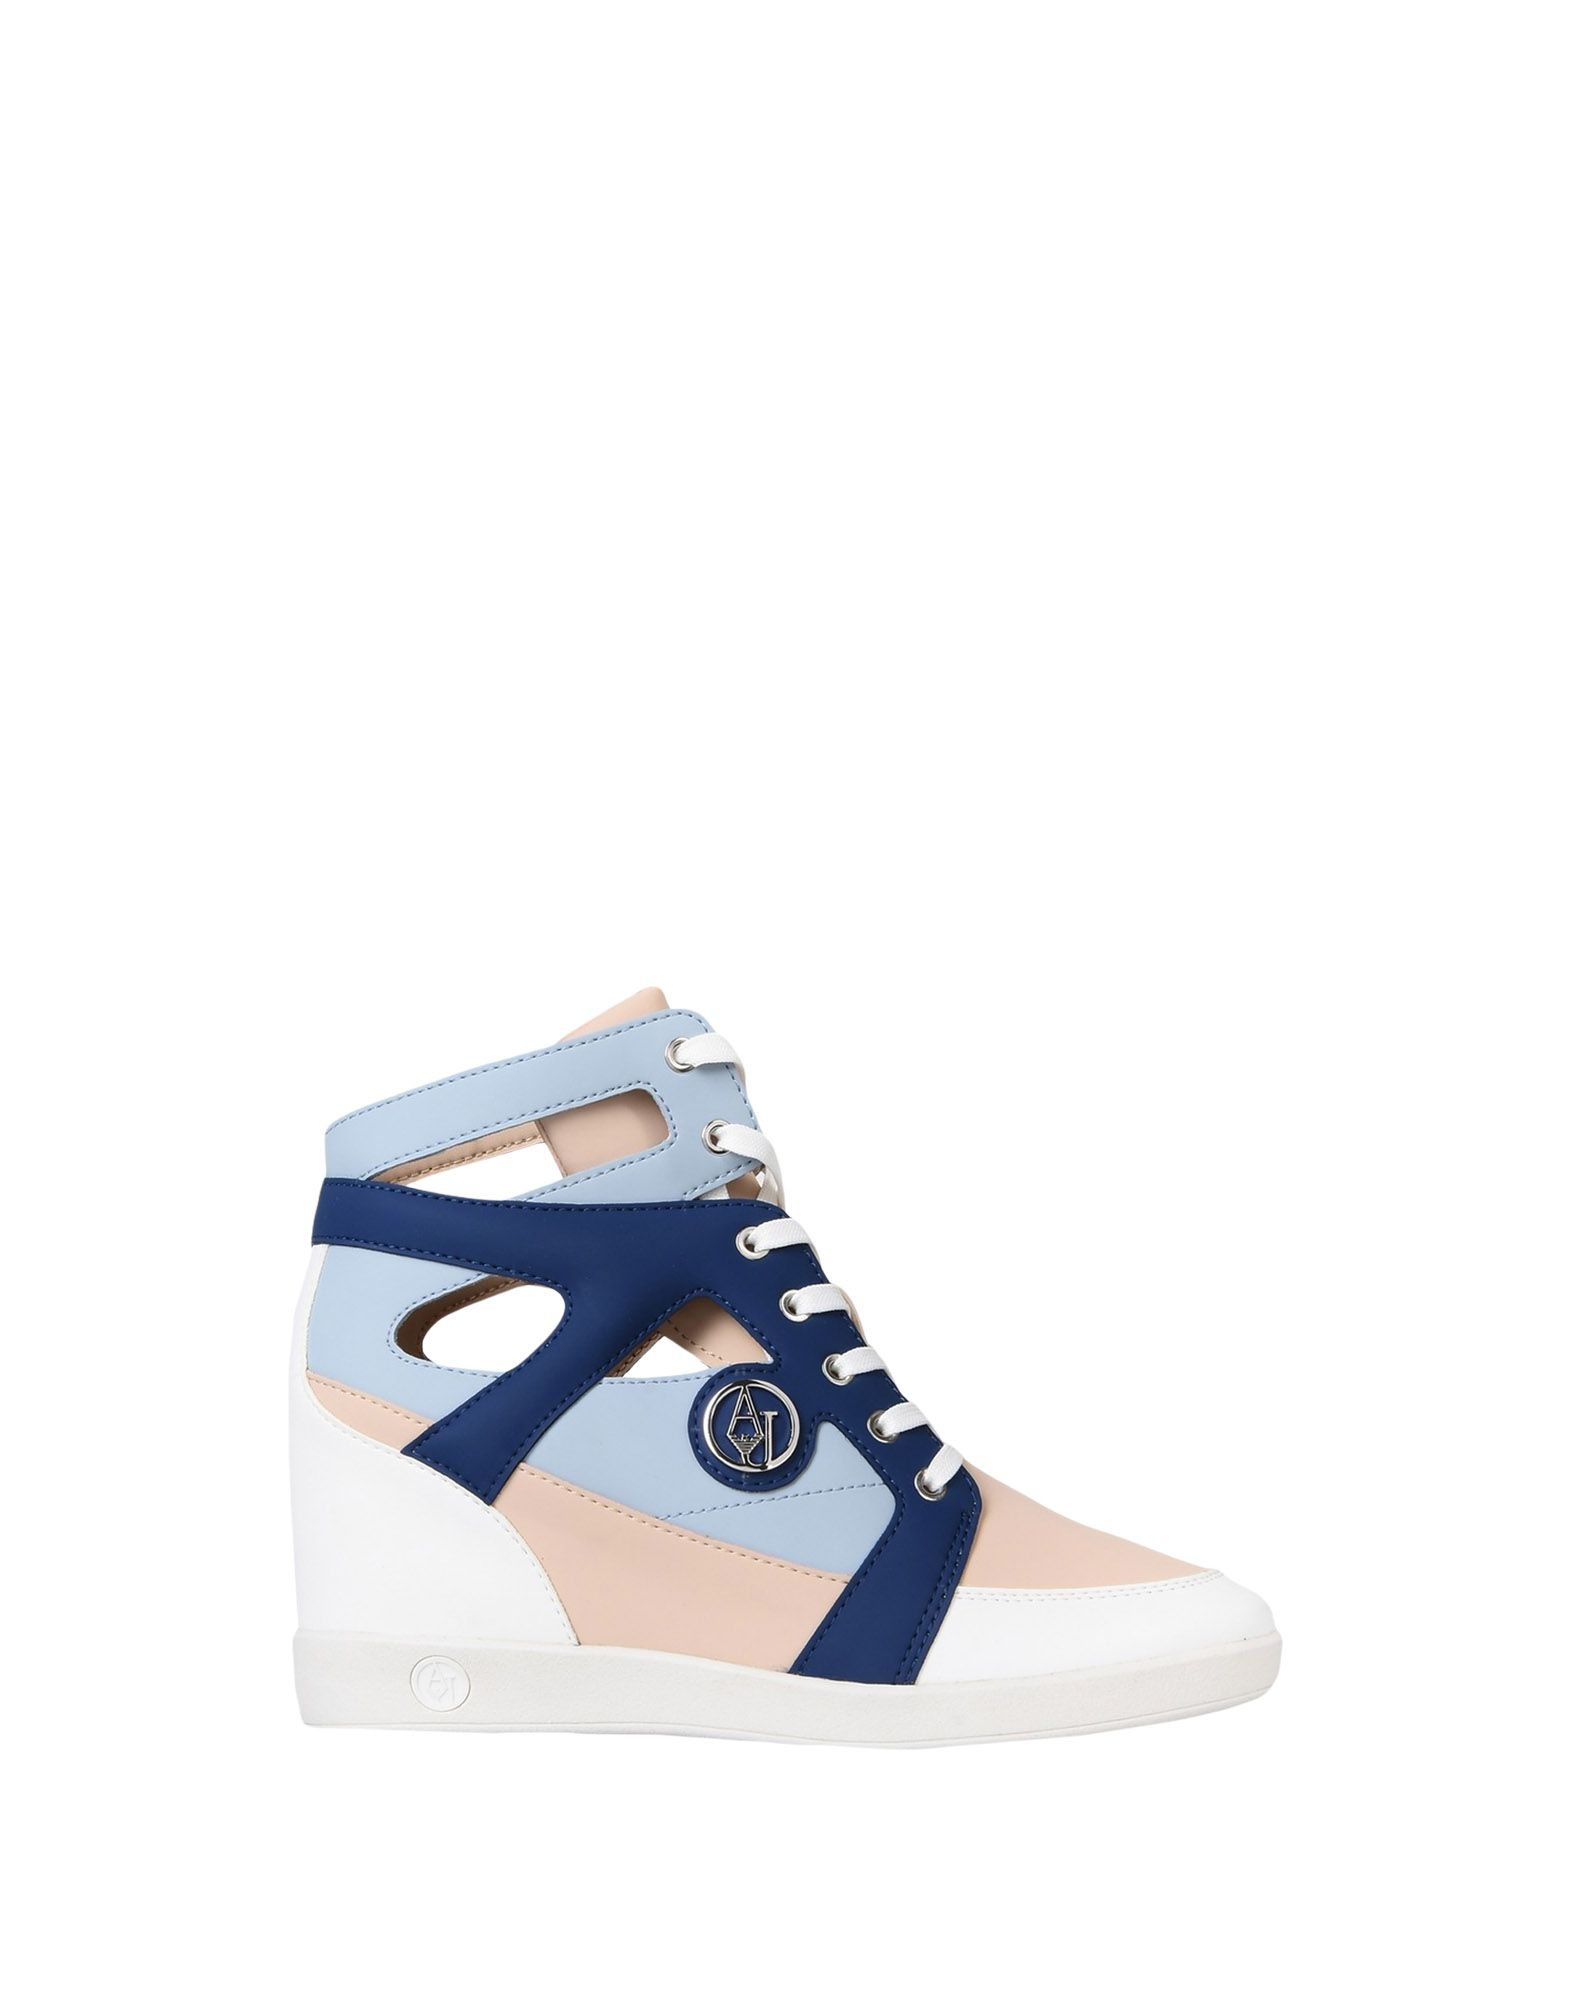 Sneakers Armani Jeans Femme - Sneakers Armani Jeans sur